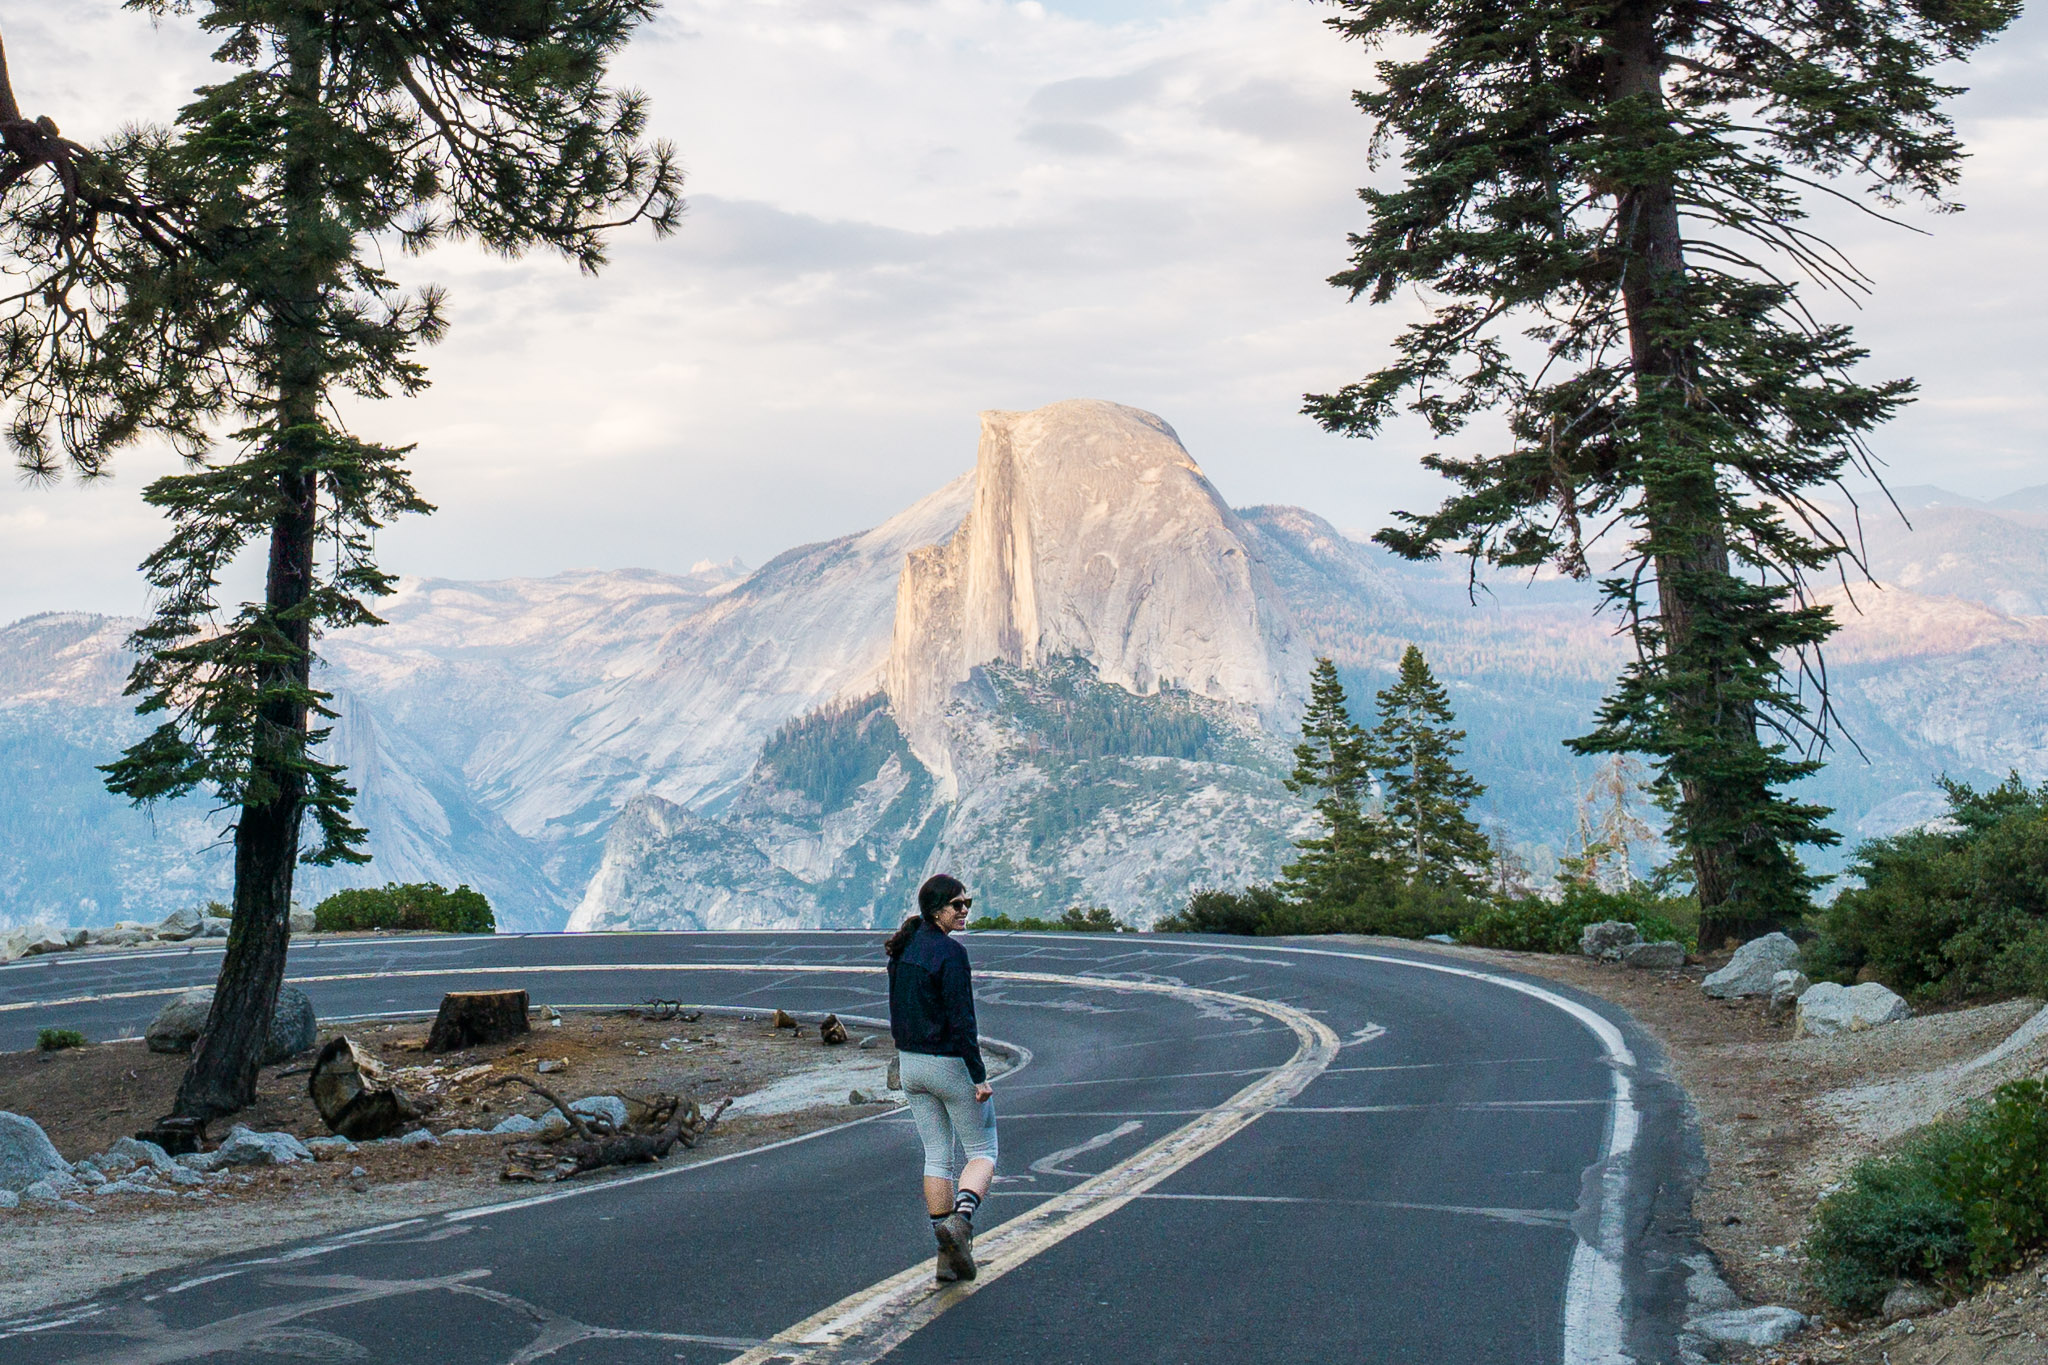 On the road to Glacier Point with Half Dome in the distance